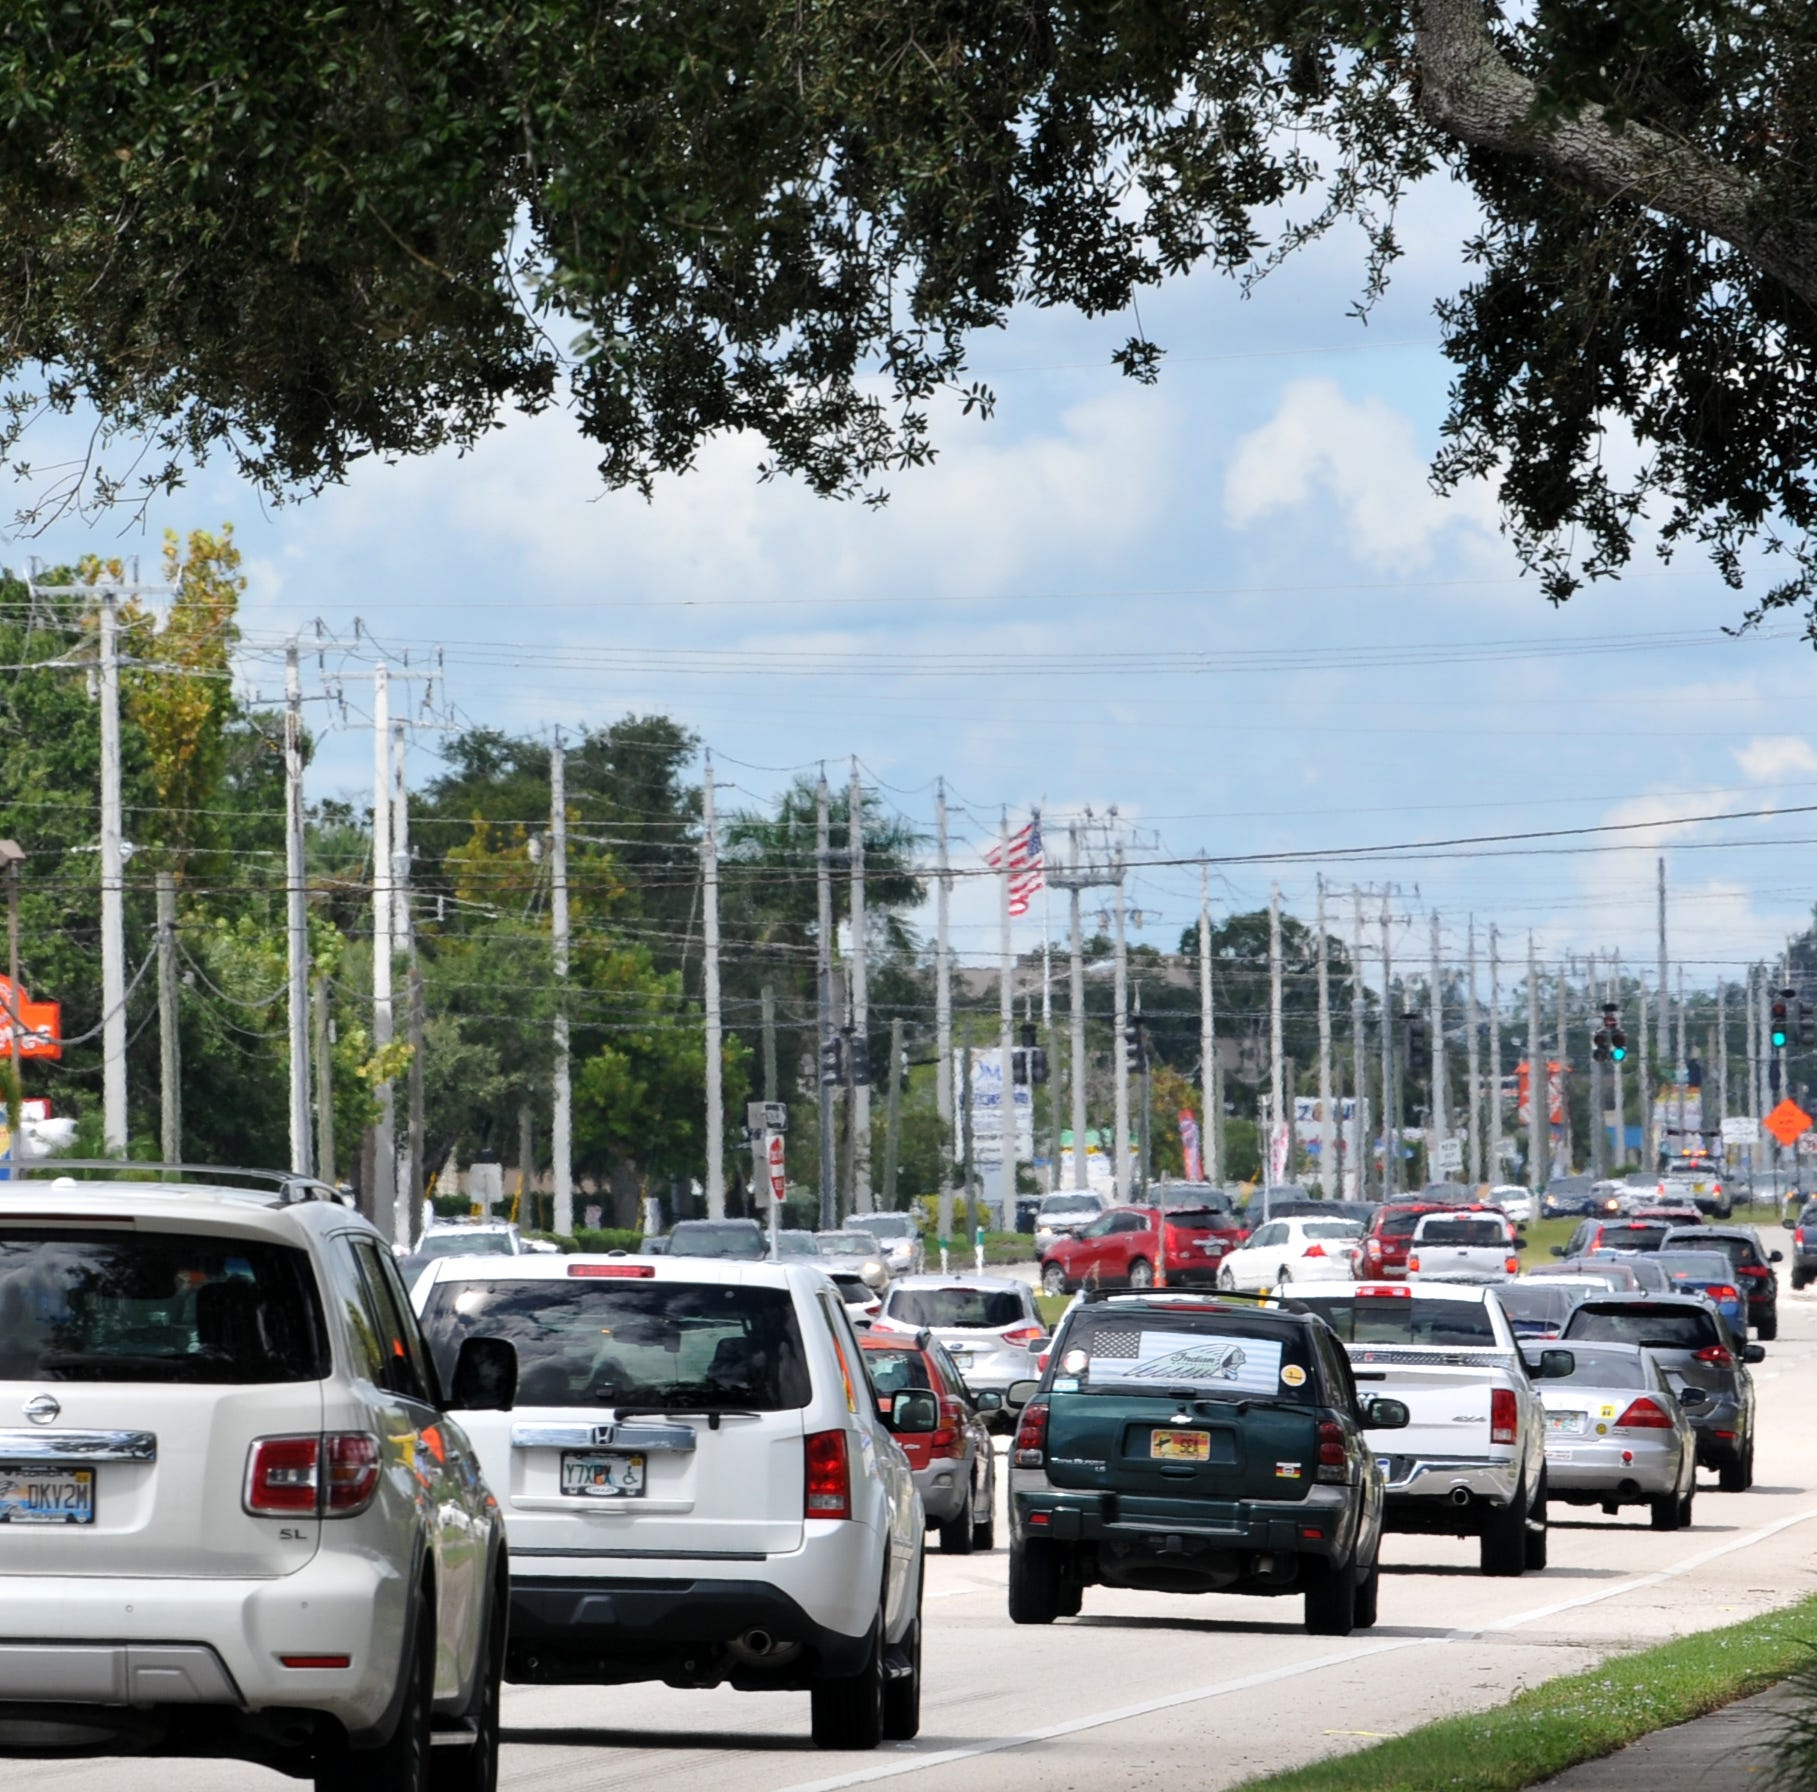 What are Brevard County's most dangerous traffic spots?